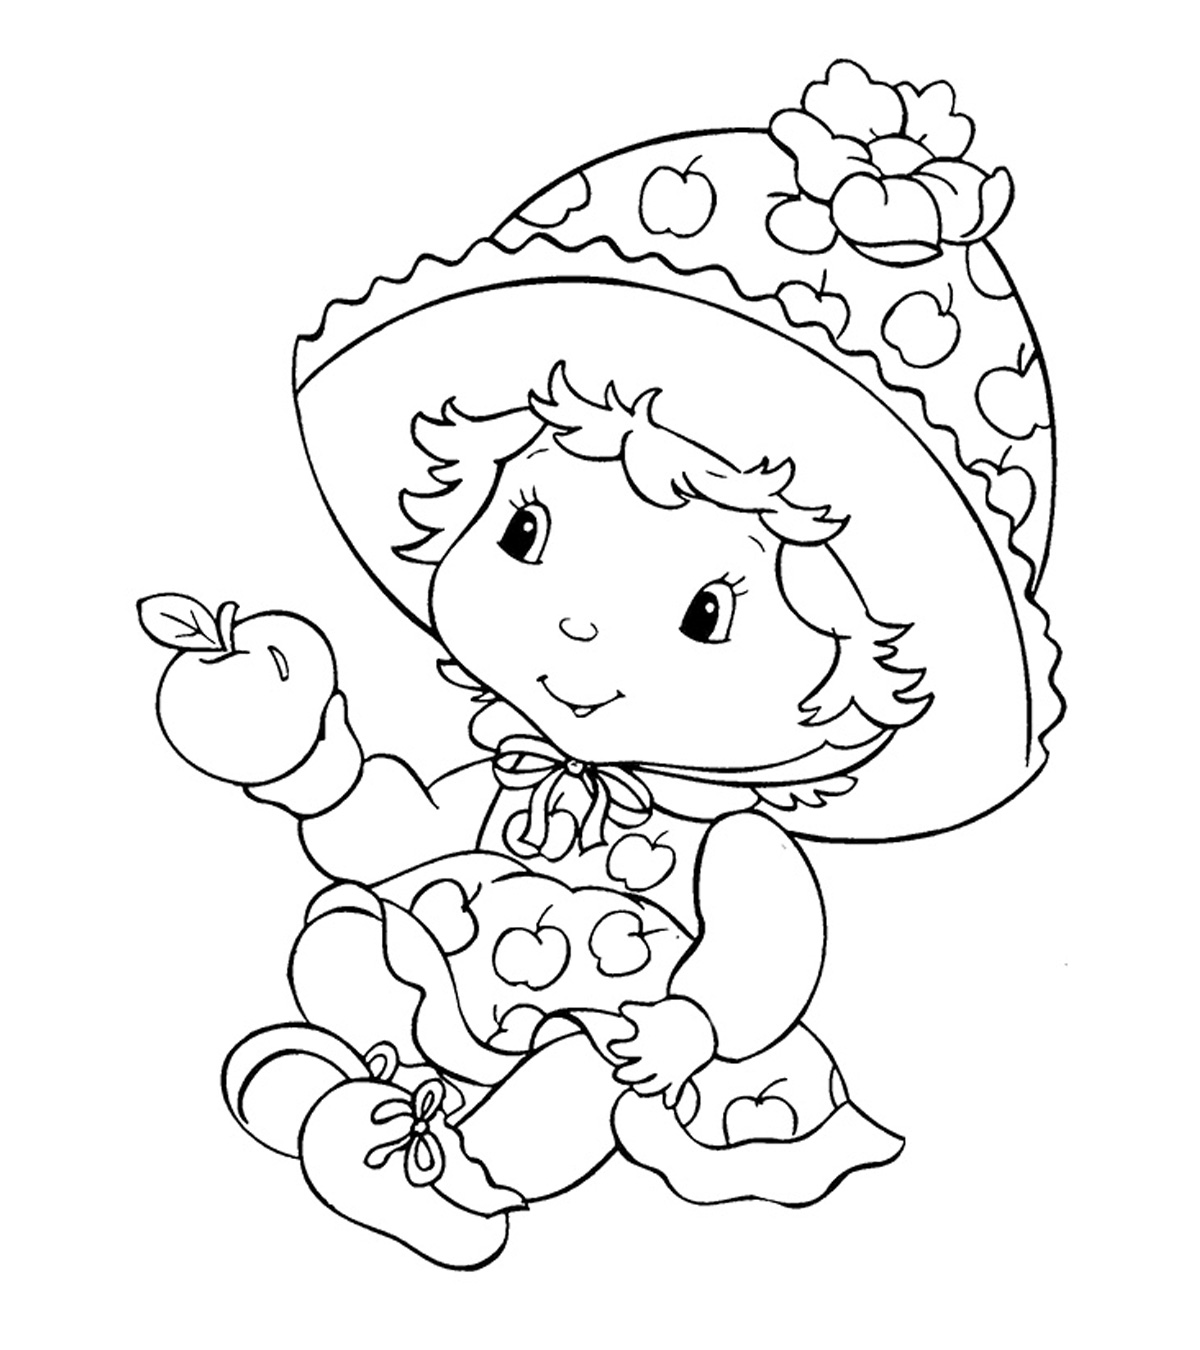 Free Printable Strawberry Shortcake Coloring Pages To